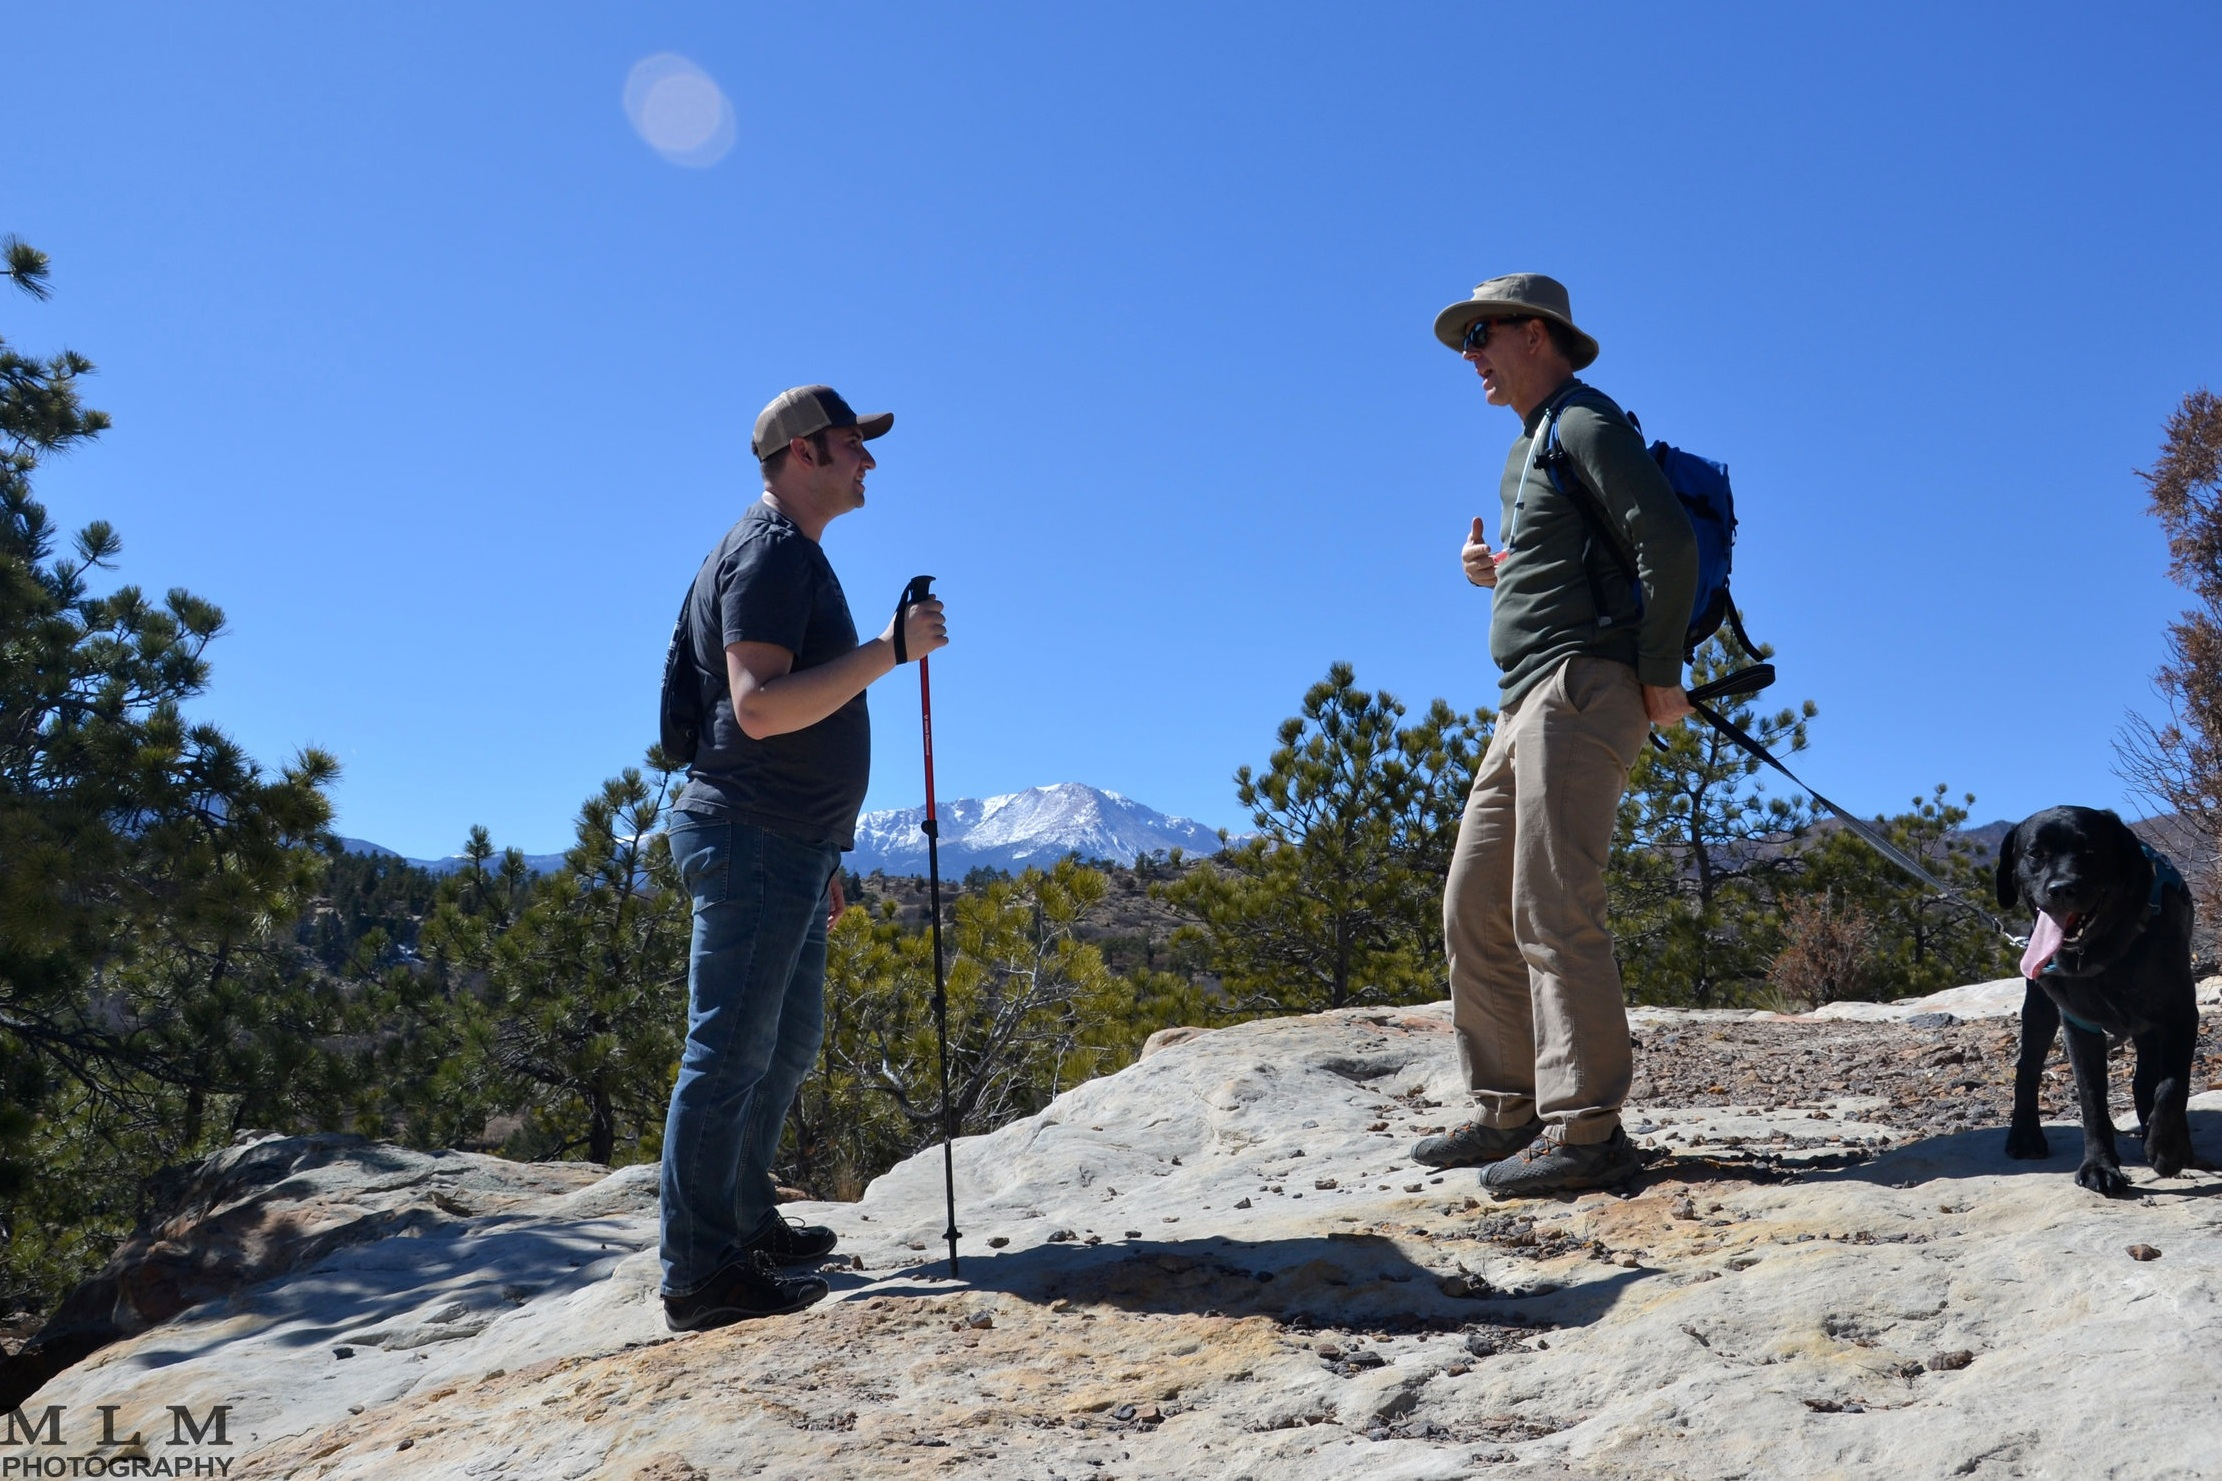 Ute Valley - A well-defined marked trail is an easy choice for beginners with some slight elevation gains that result in stunning views of Pikes Peaks and Colorado Springs.